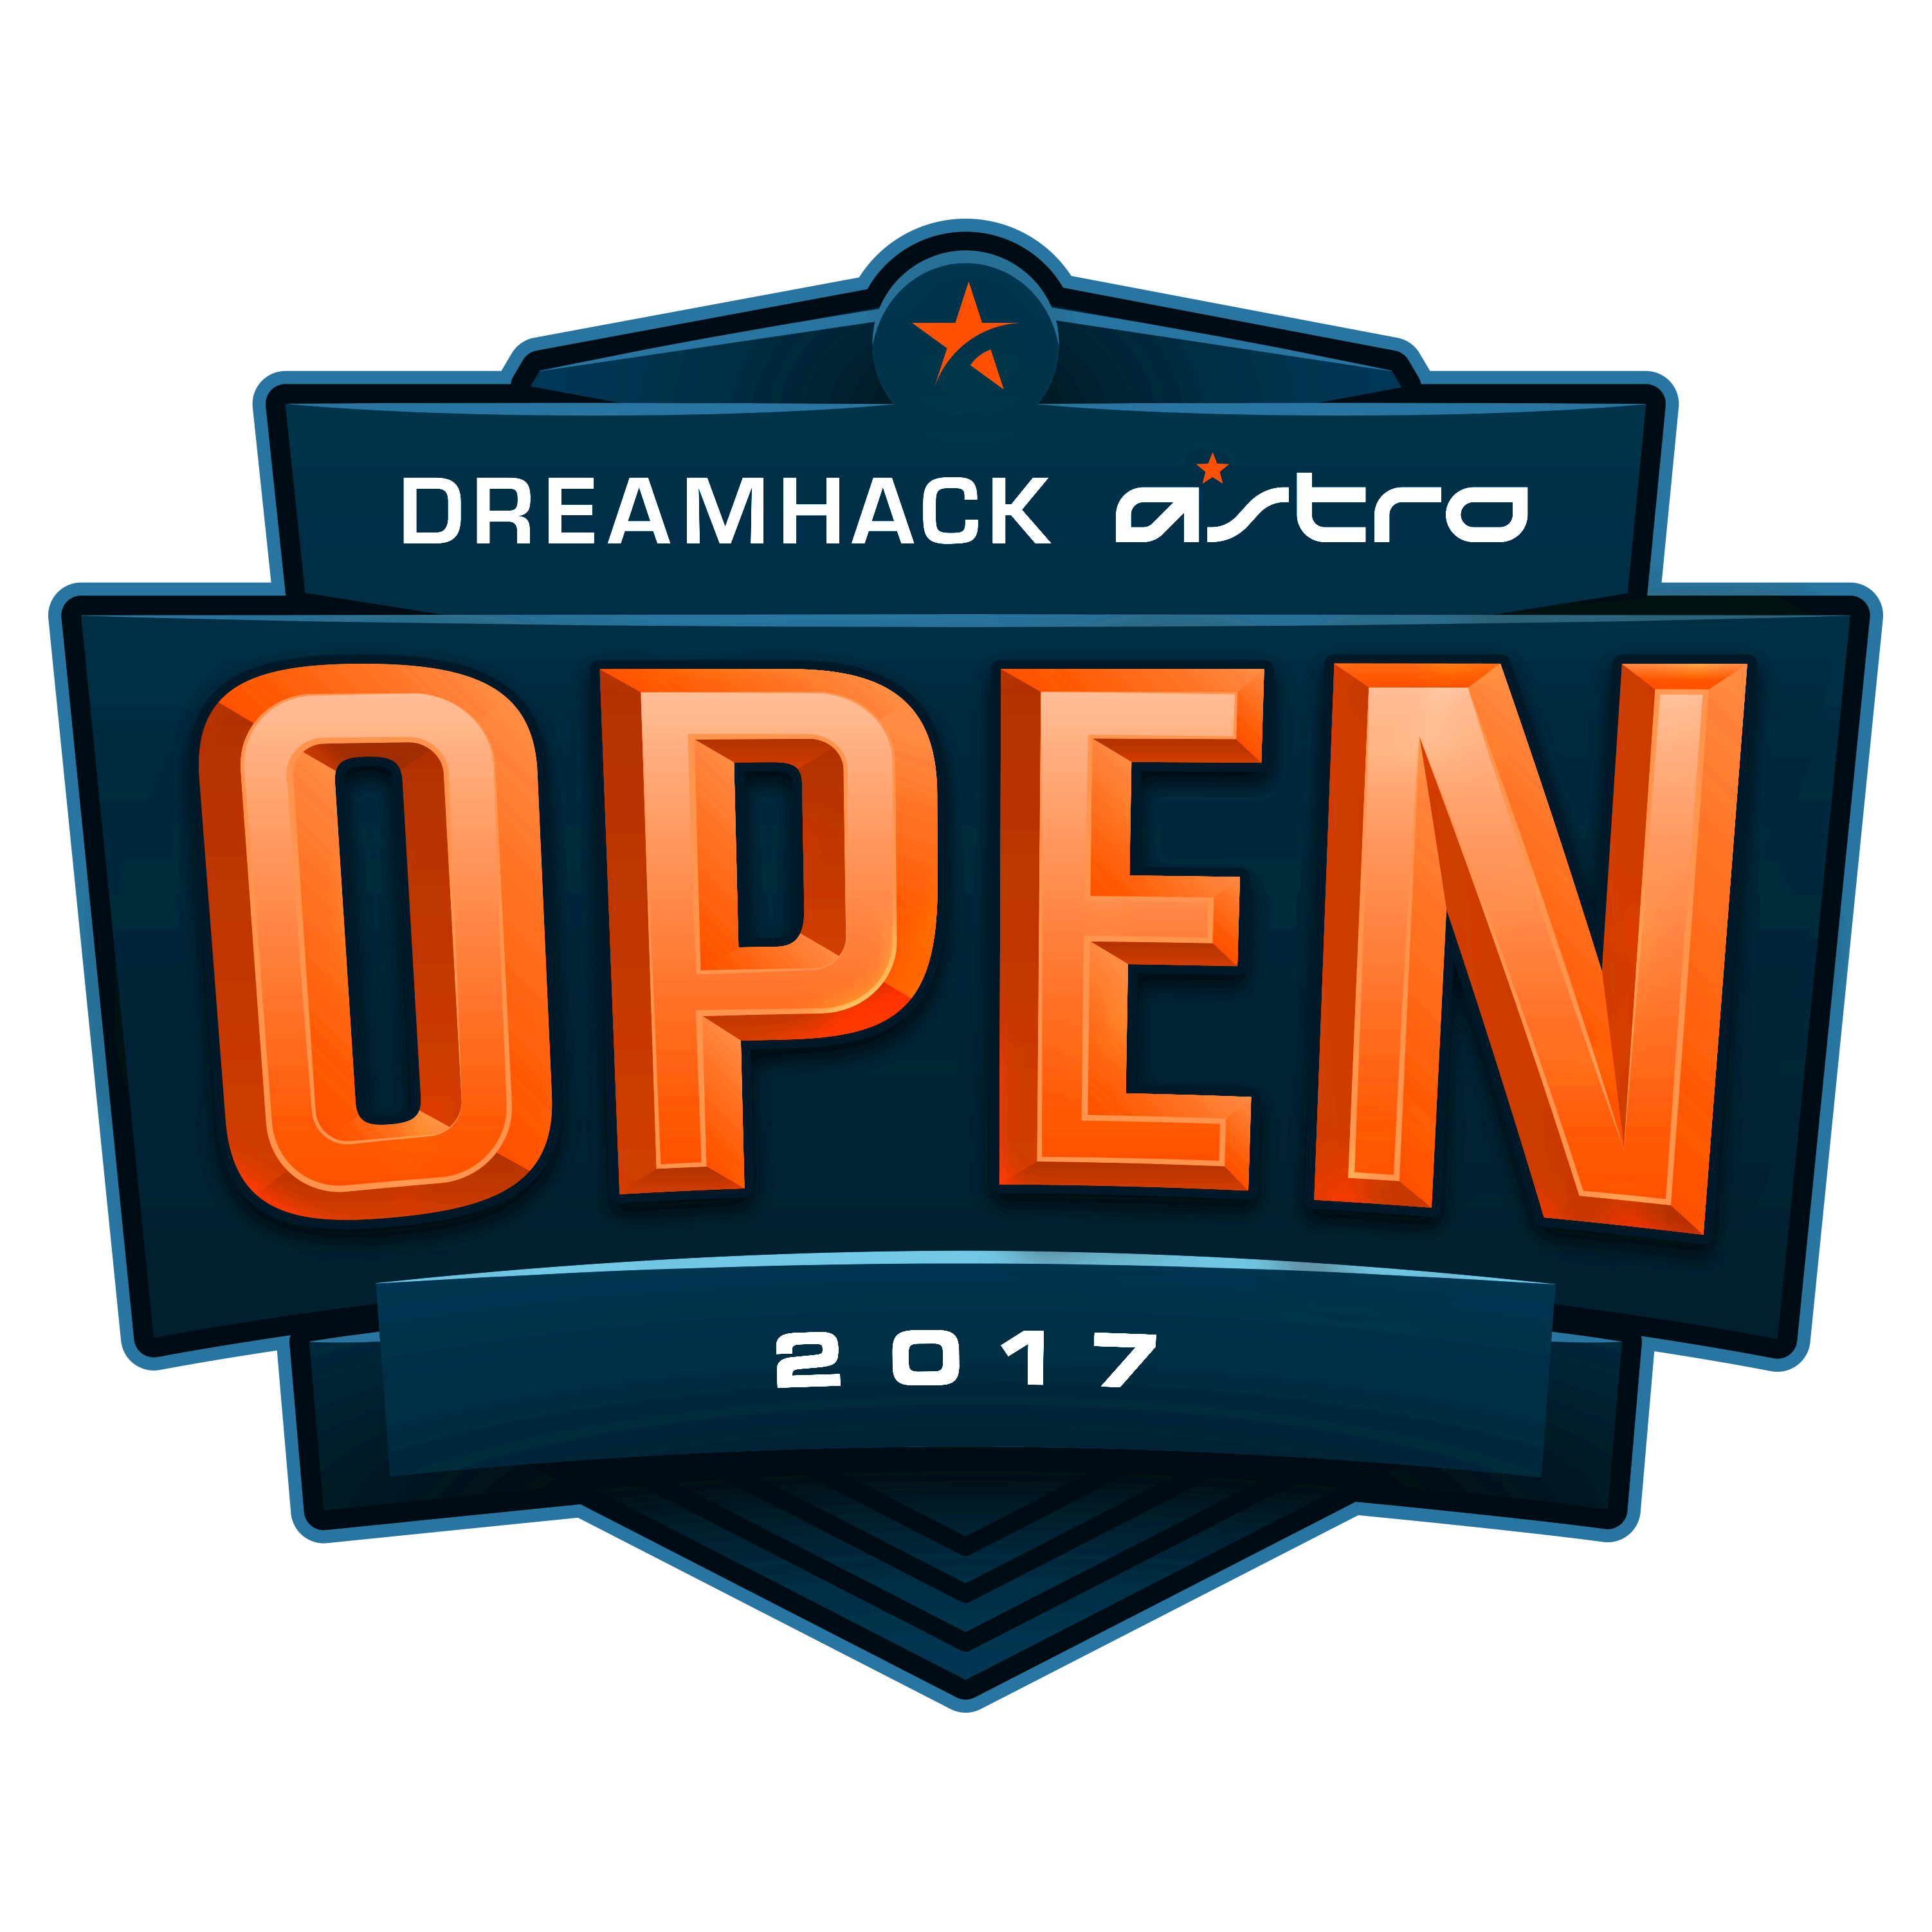 Scoreboard.com - counter-strike: counter-strike dreamhack tours 2017 misfits-counter-strike